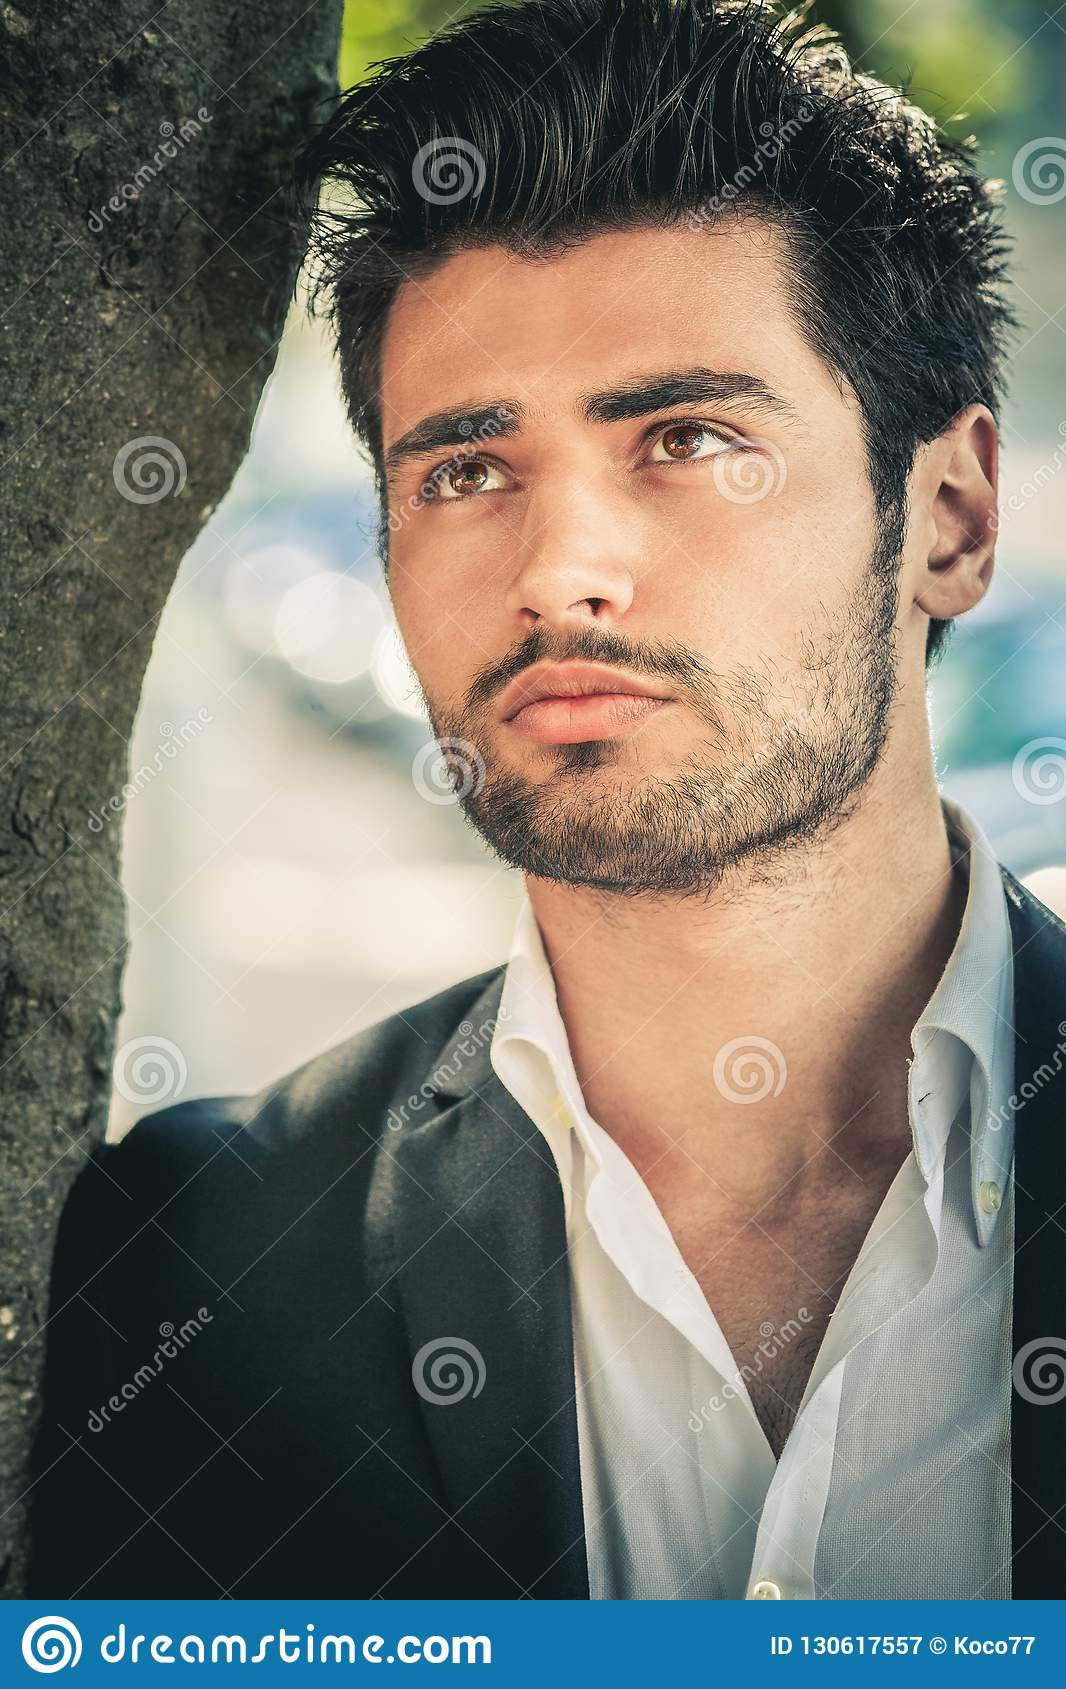 Handsome young man thinking. Outdoors, near a tree.